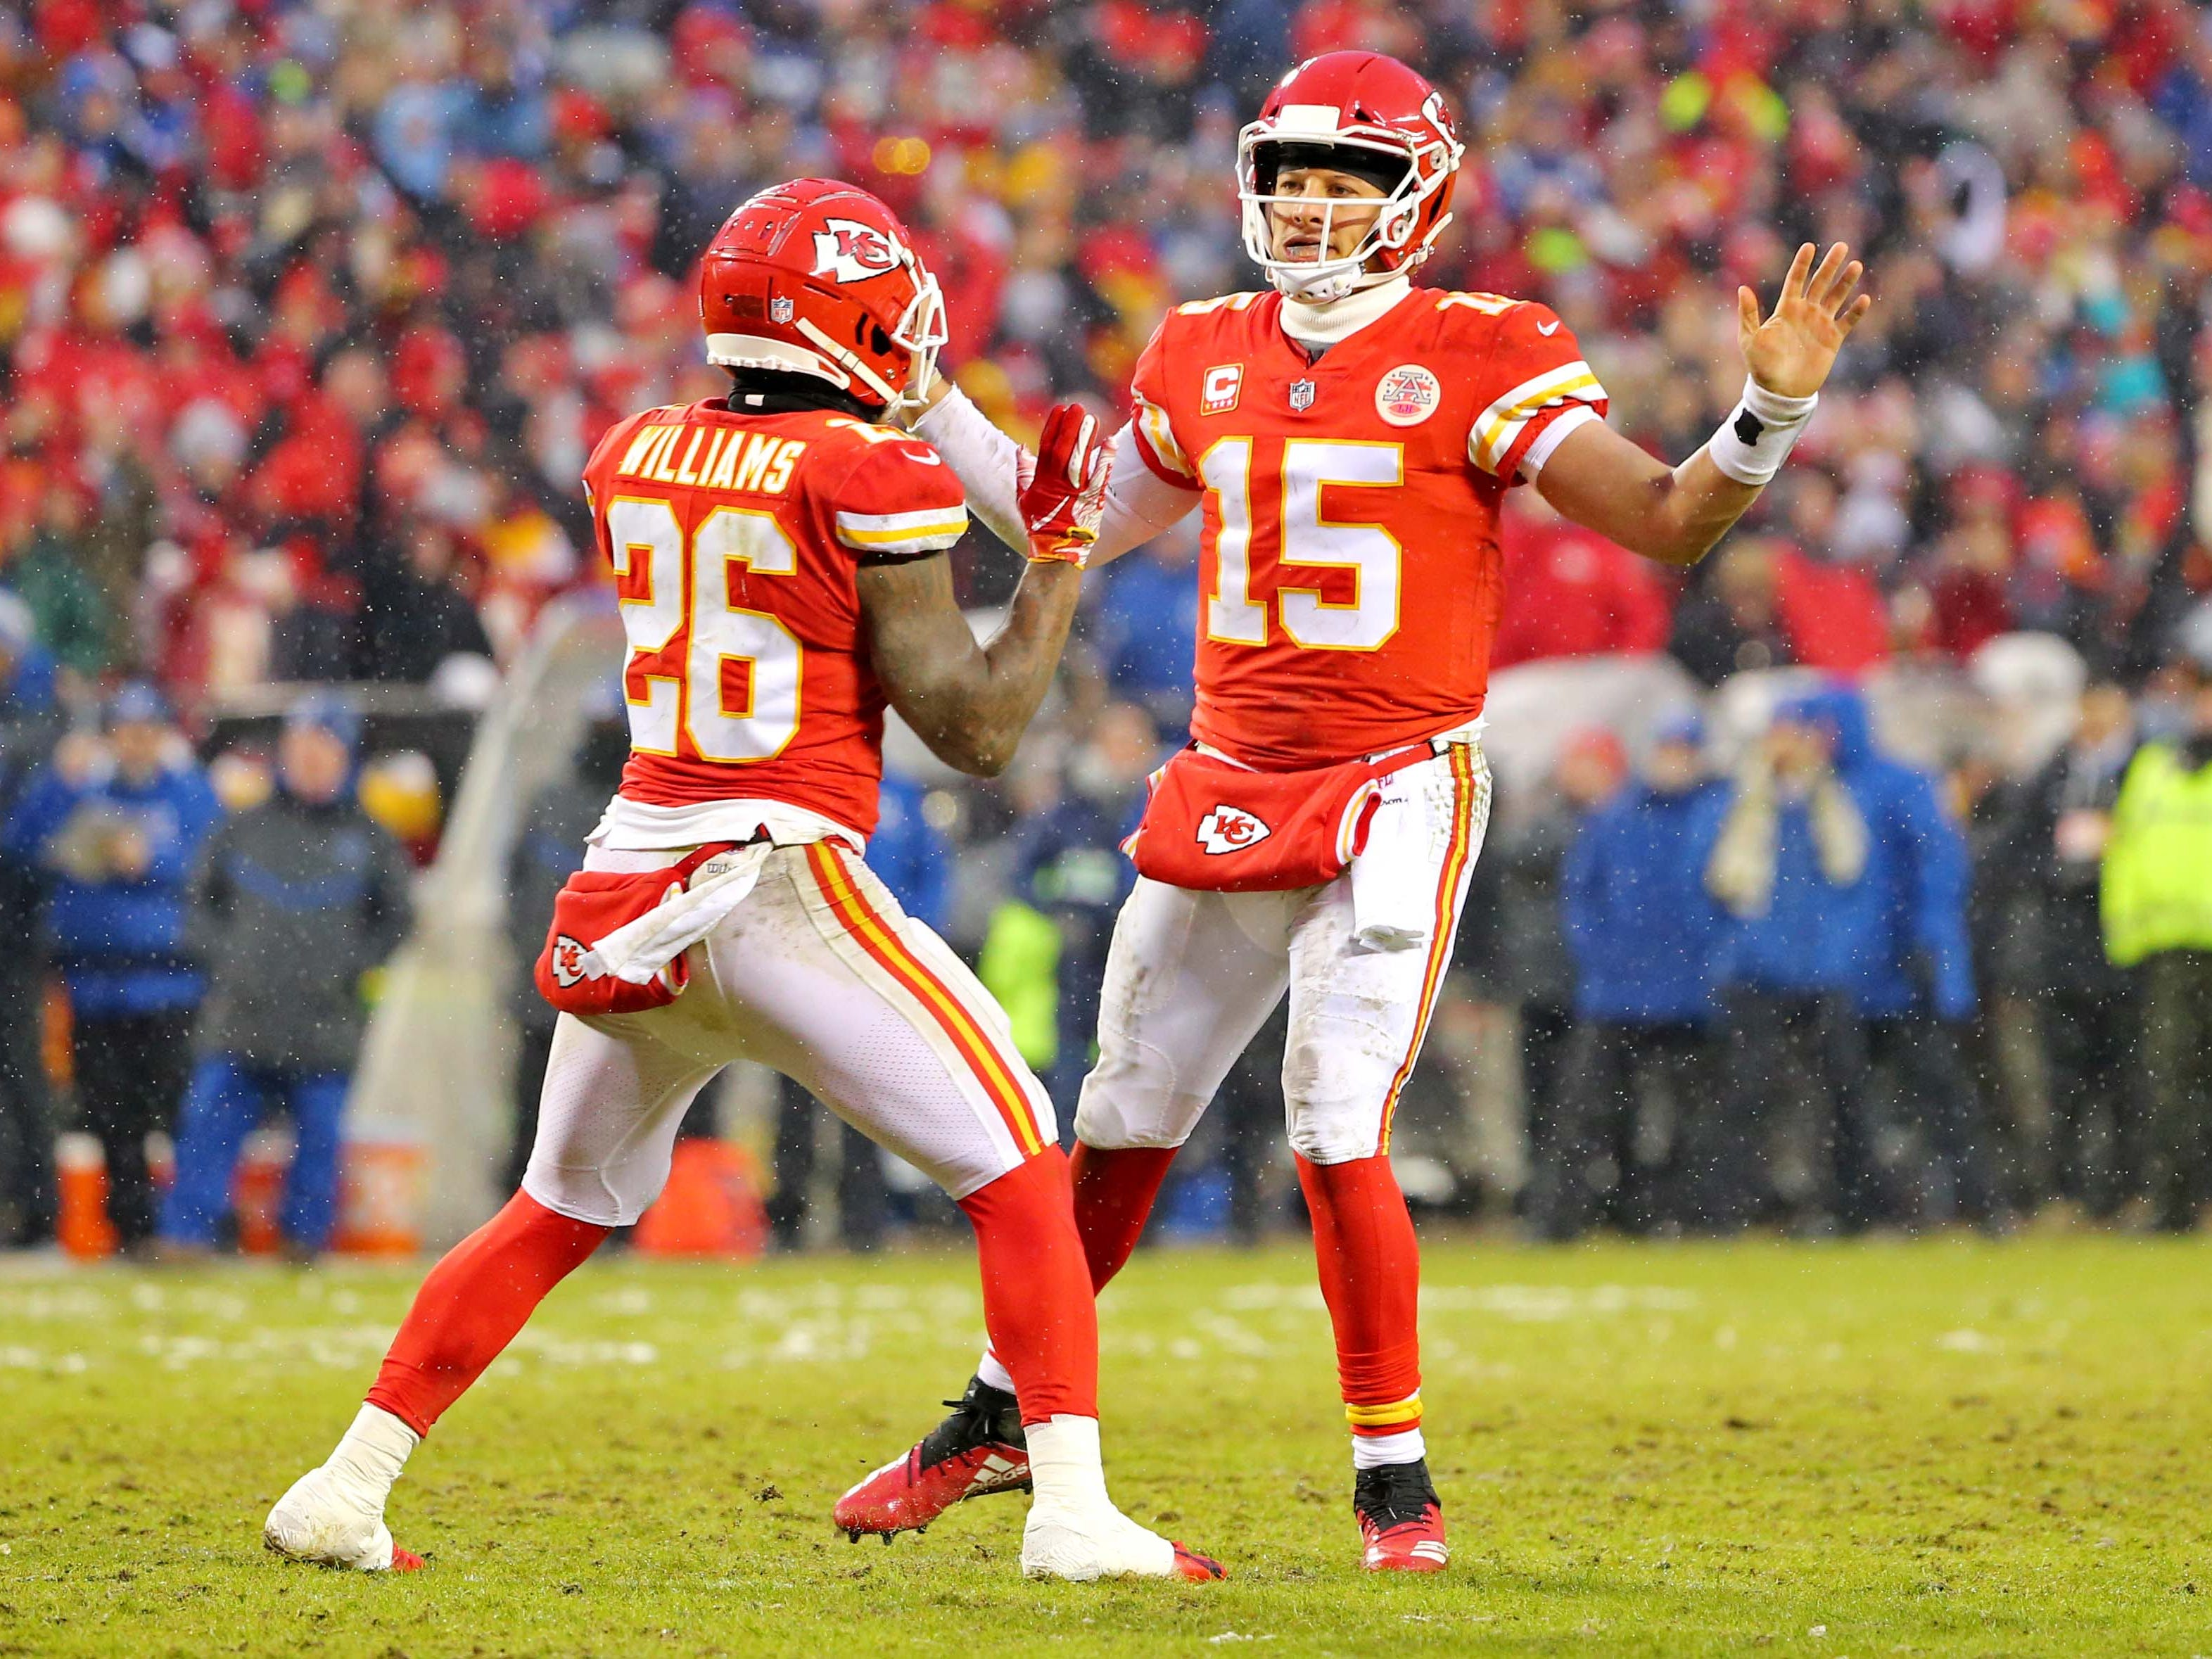 Kansas City Chiefs quarterback Patrick Mahomes (15) celebrates with Kansas City Chiefs running back Damien Williams (26) after scoring a touchdown  during the first quarter against the Indianapolis Colts in an AFC Divisional playoff football game at Arrowhead Stadium.